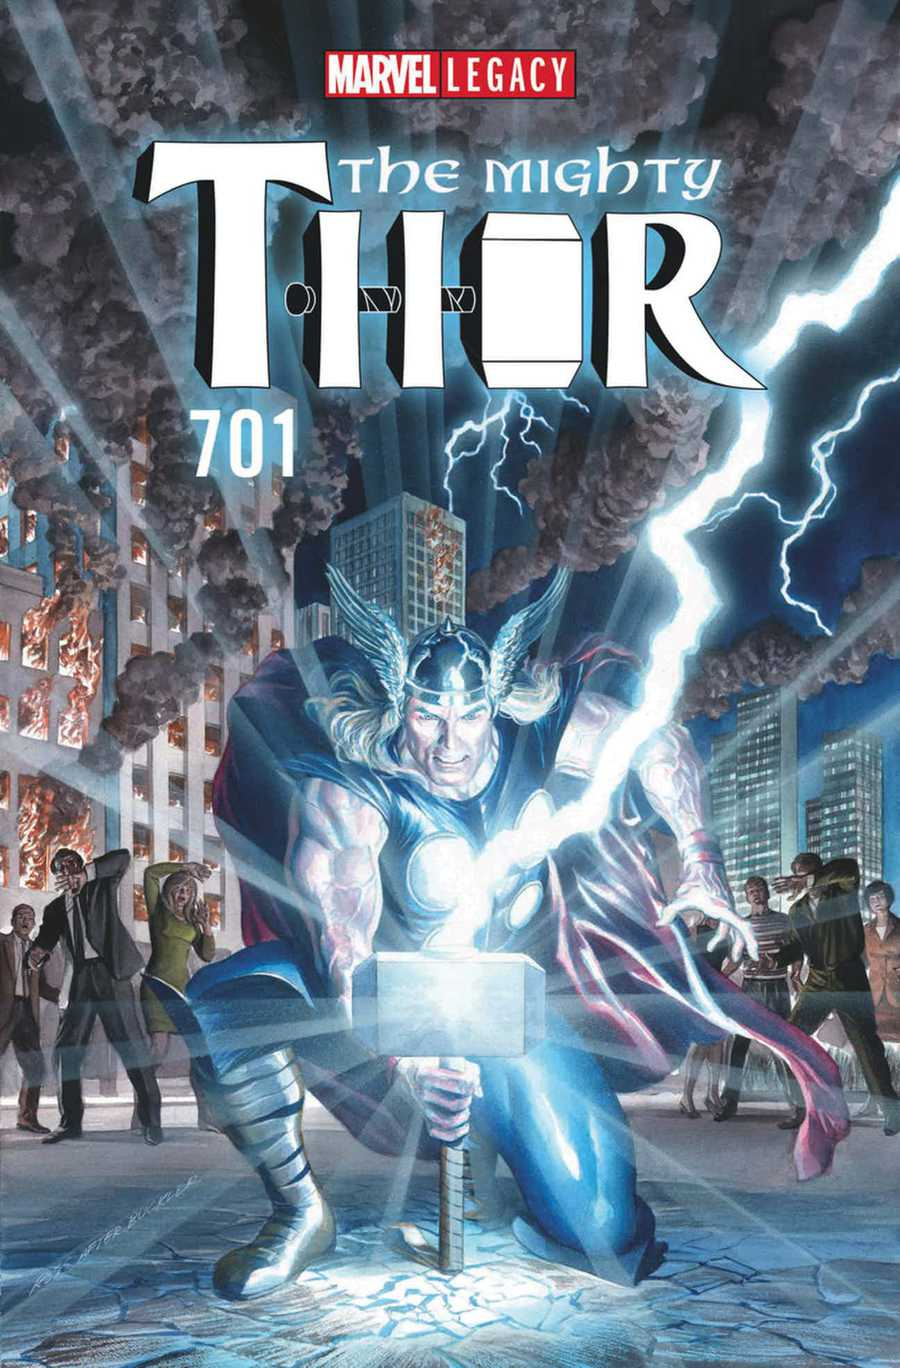 mighty-thor-701-1017291_aynv